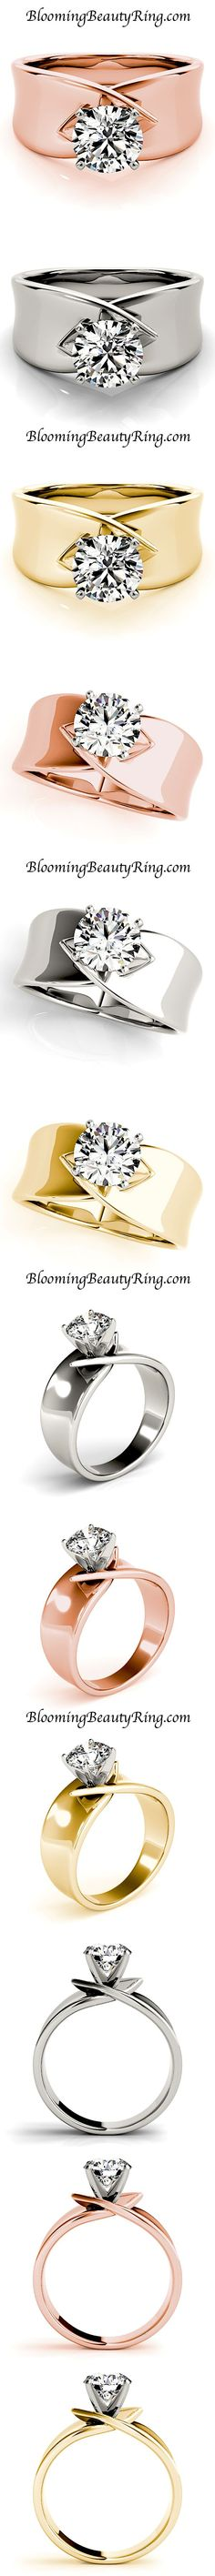 BloomingBeautyRing.com (213) 222-8868 - A Gorgeous Solitaire Diamond #EngagementRing with a unique wide band available in many different types of metal.